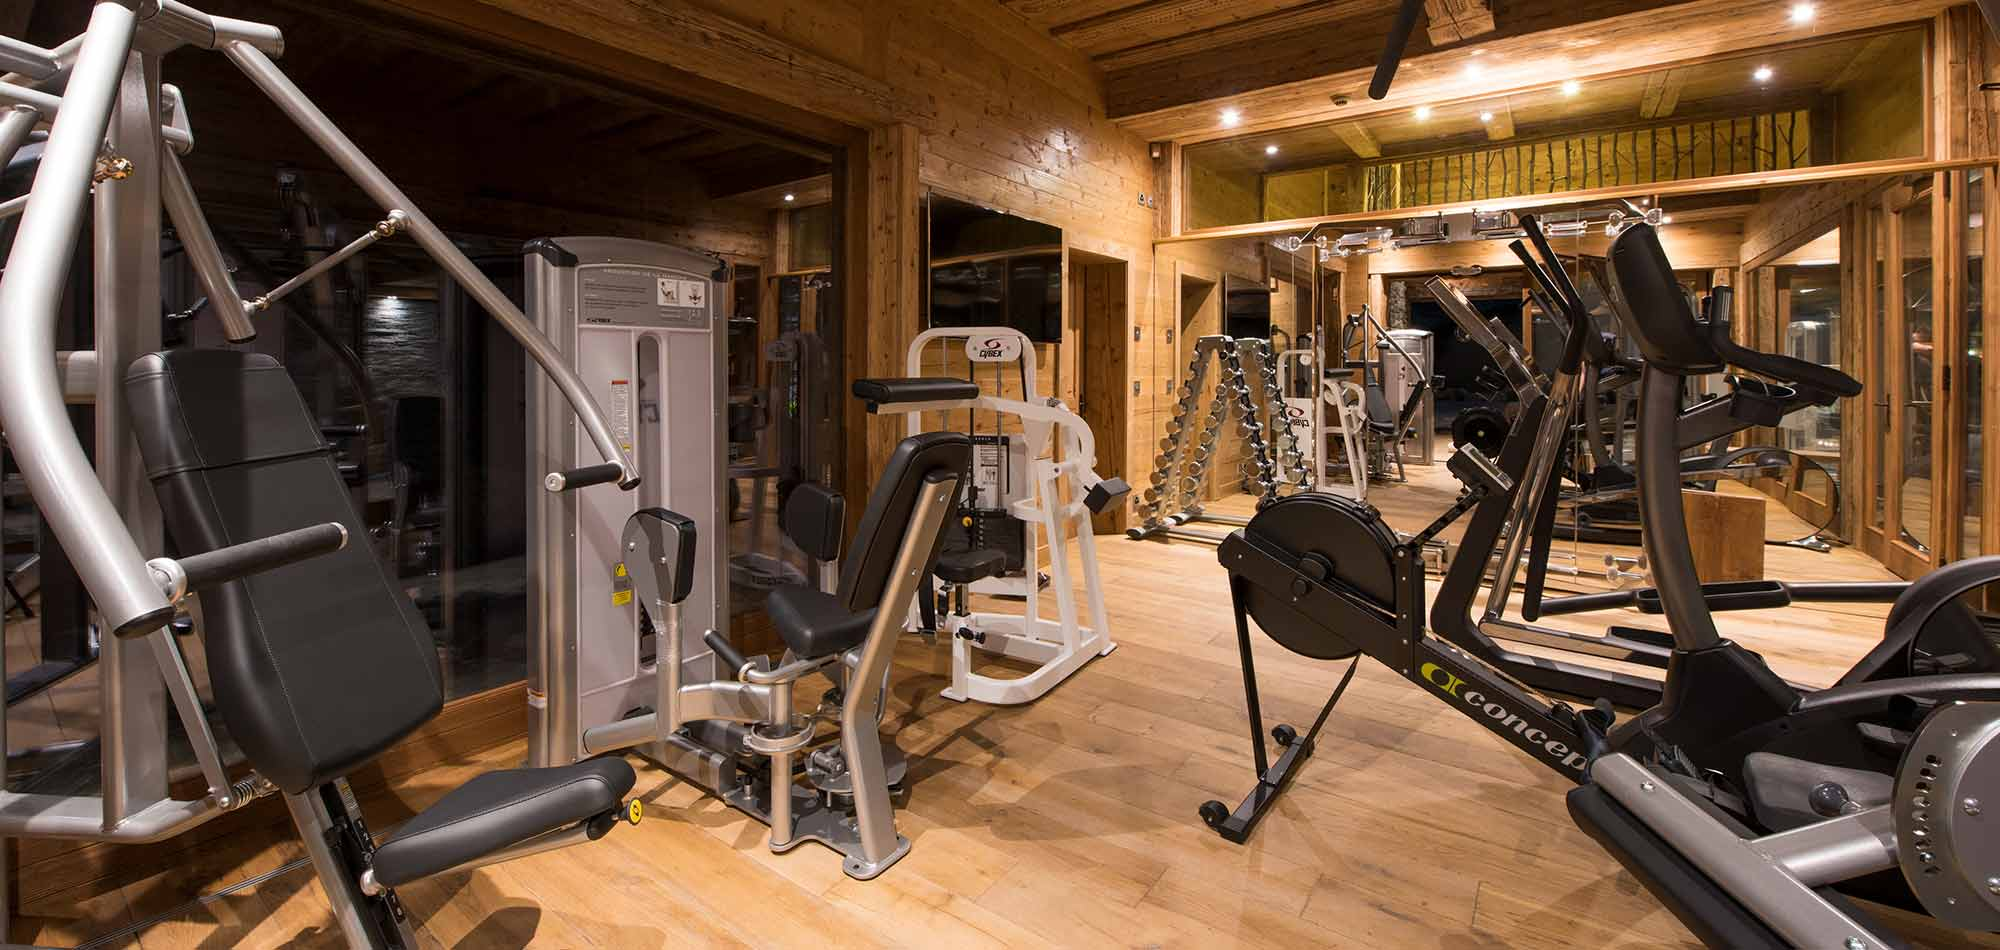 mon_izba_verbier_switzerland_luxury_ski_chalet_gym